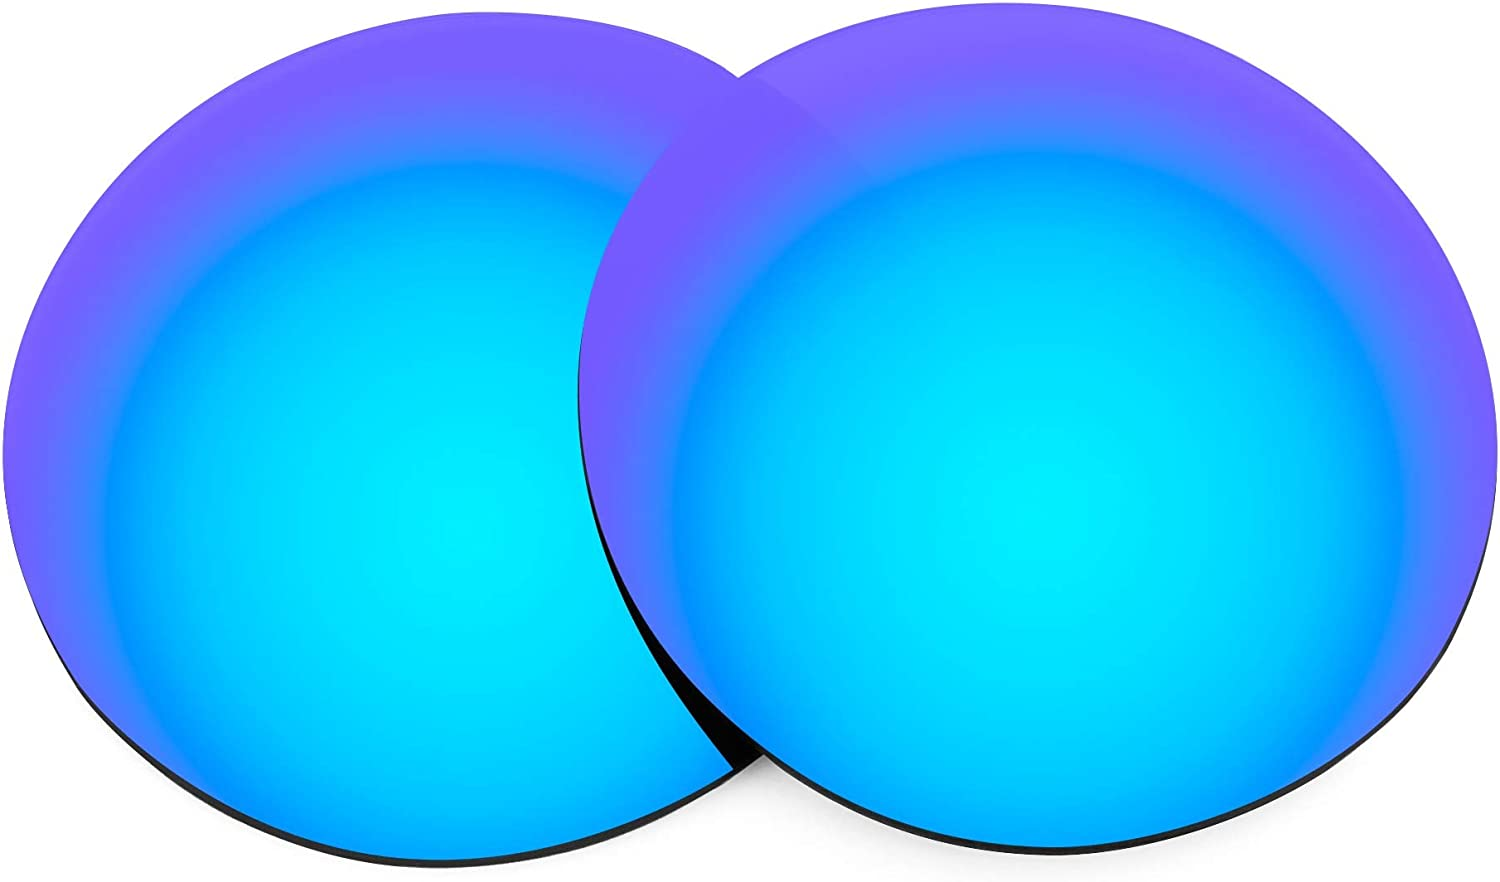 Revant Replacement Lenses Spring new work for Oakley Max 58% OFF Gen E Wire 1